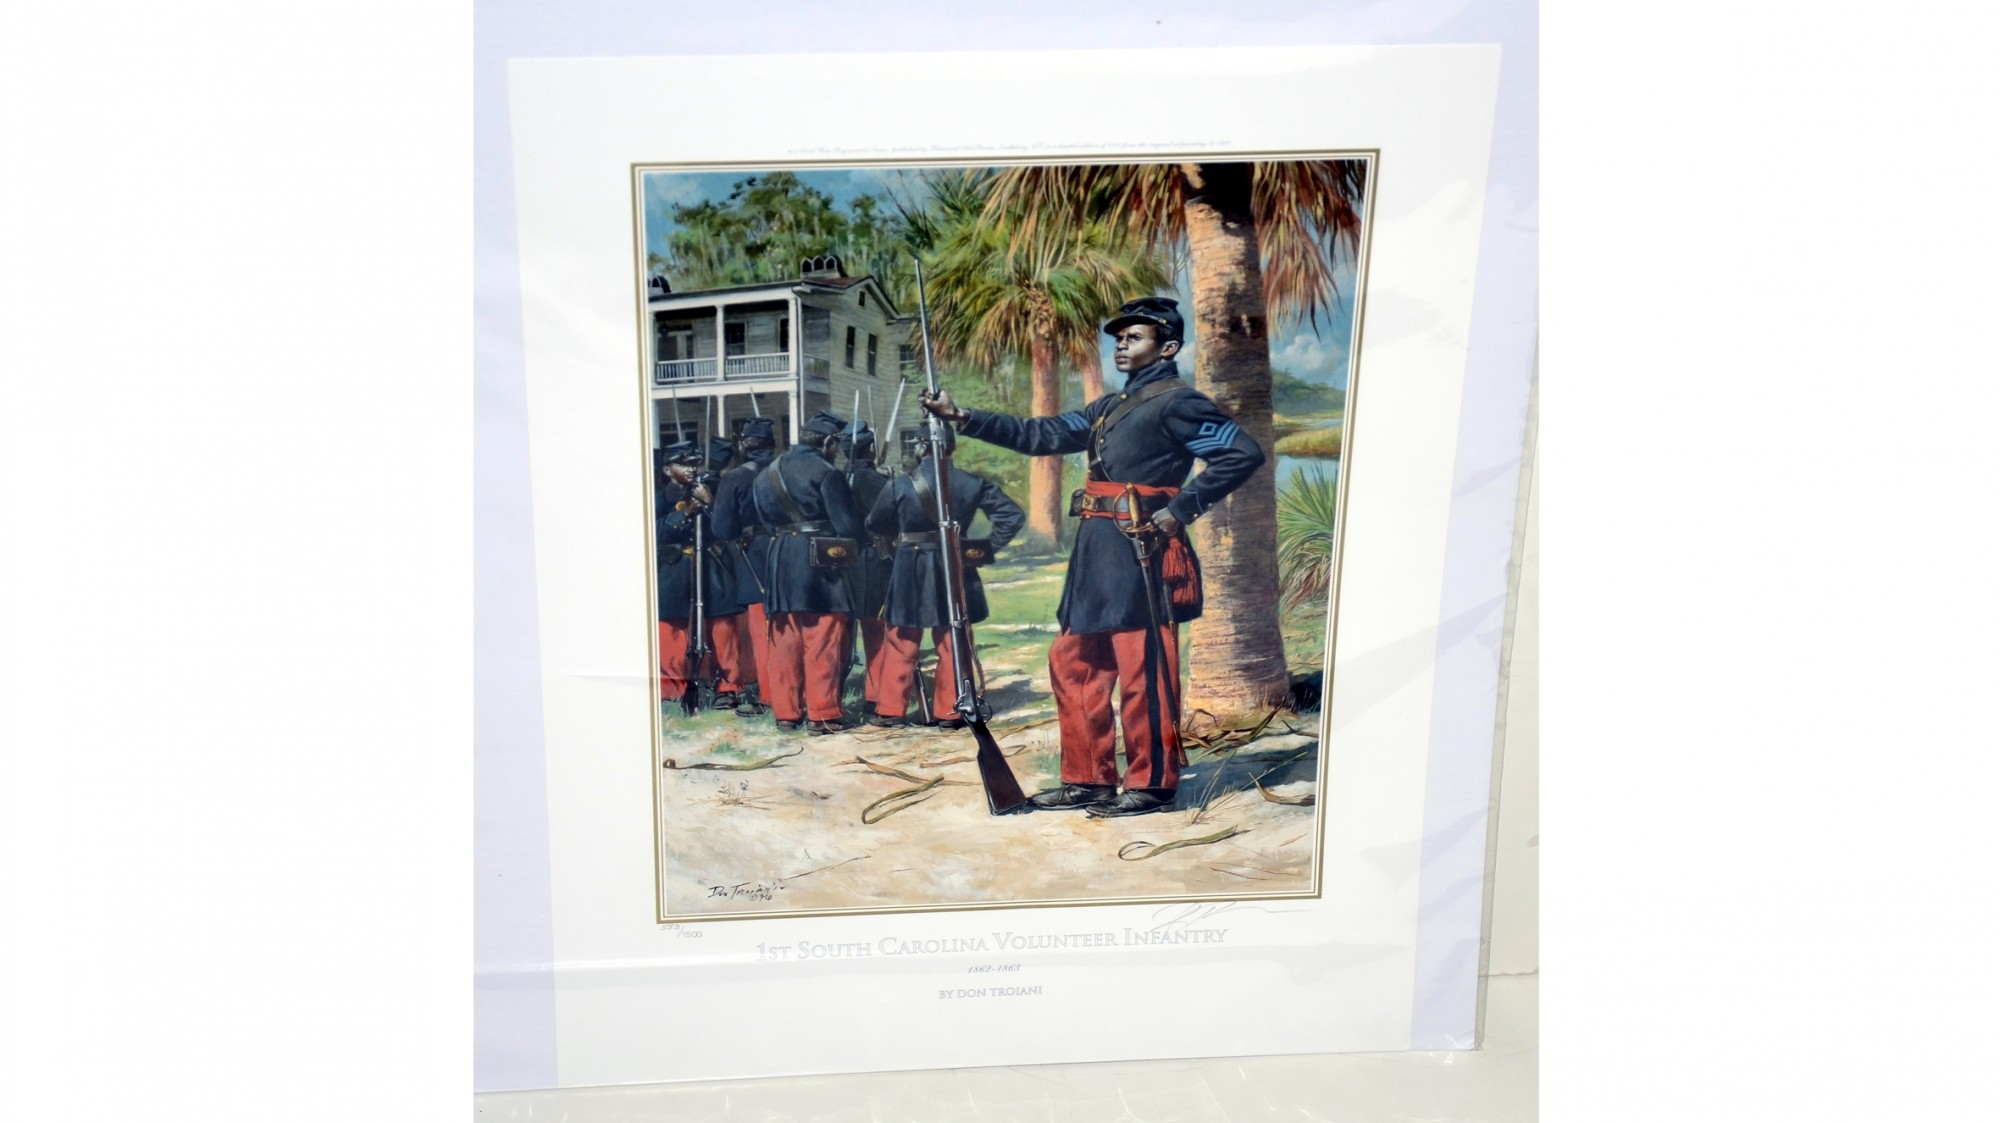 1ST SOUTH CAROLINA VOLUNTEER INFANTRY / 1862-1863  – DON TROIANI